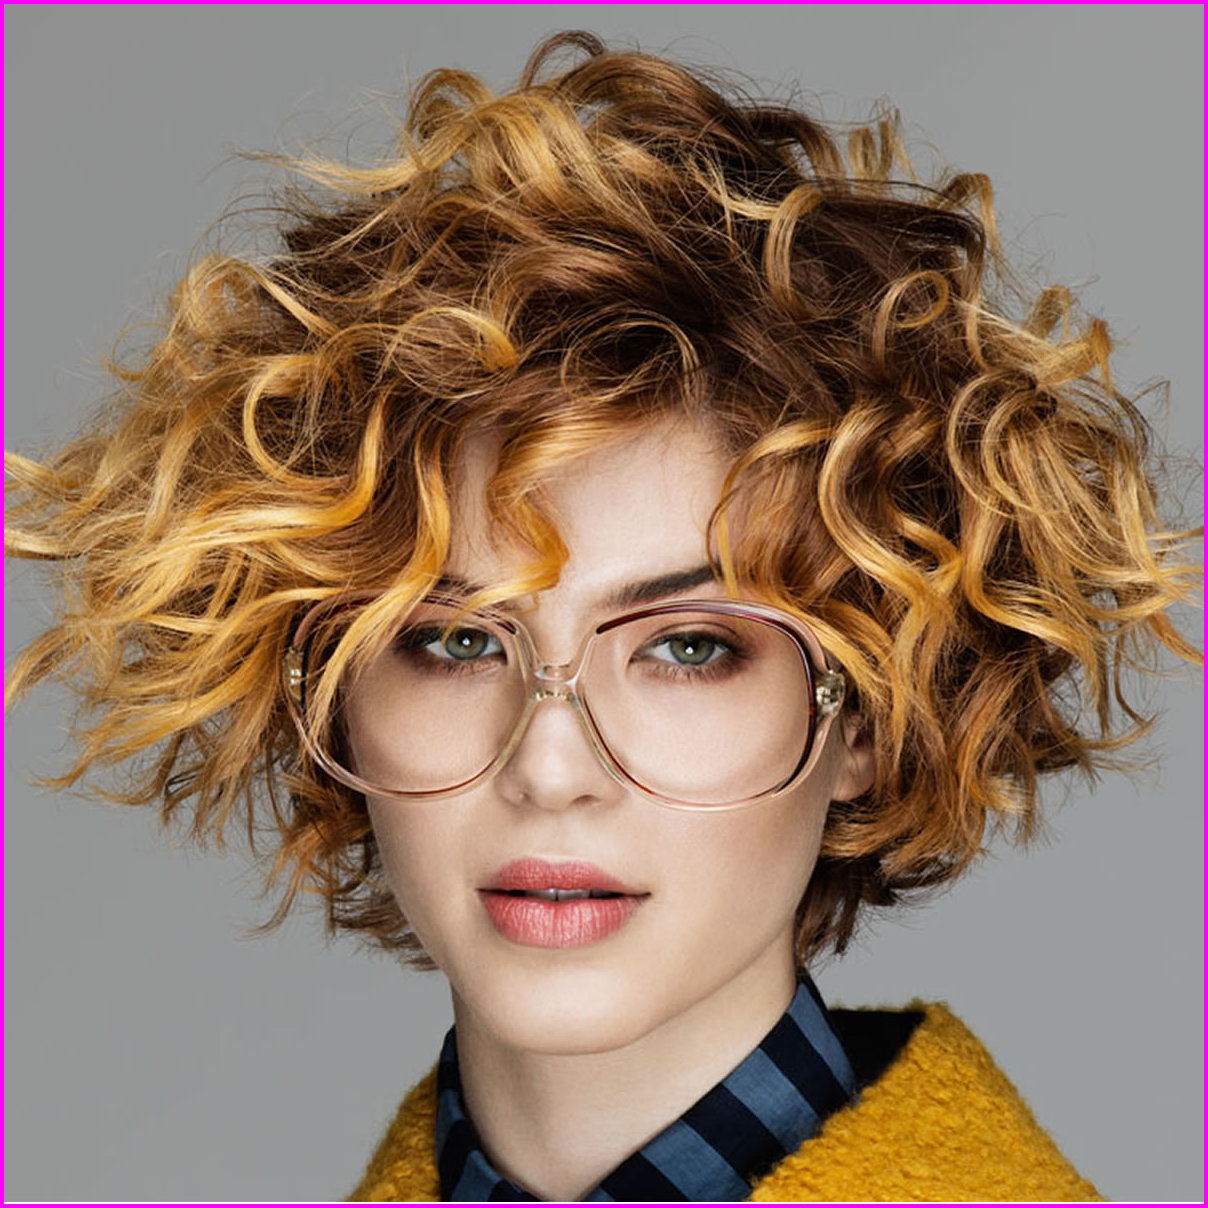 Best Short Haircuts For Curly Hair & Round Face 2019 – Best Short In Short Hairstyles For Round Faces Curly Hair (View 7 of 25)